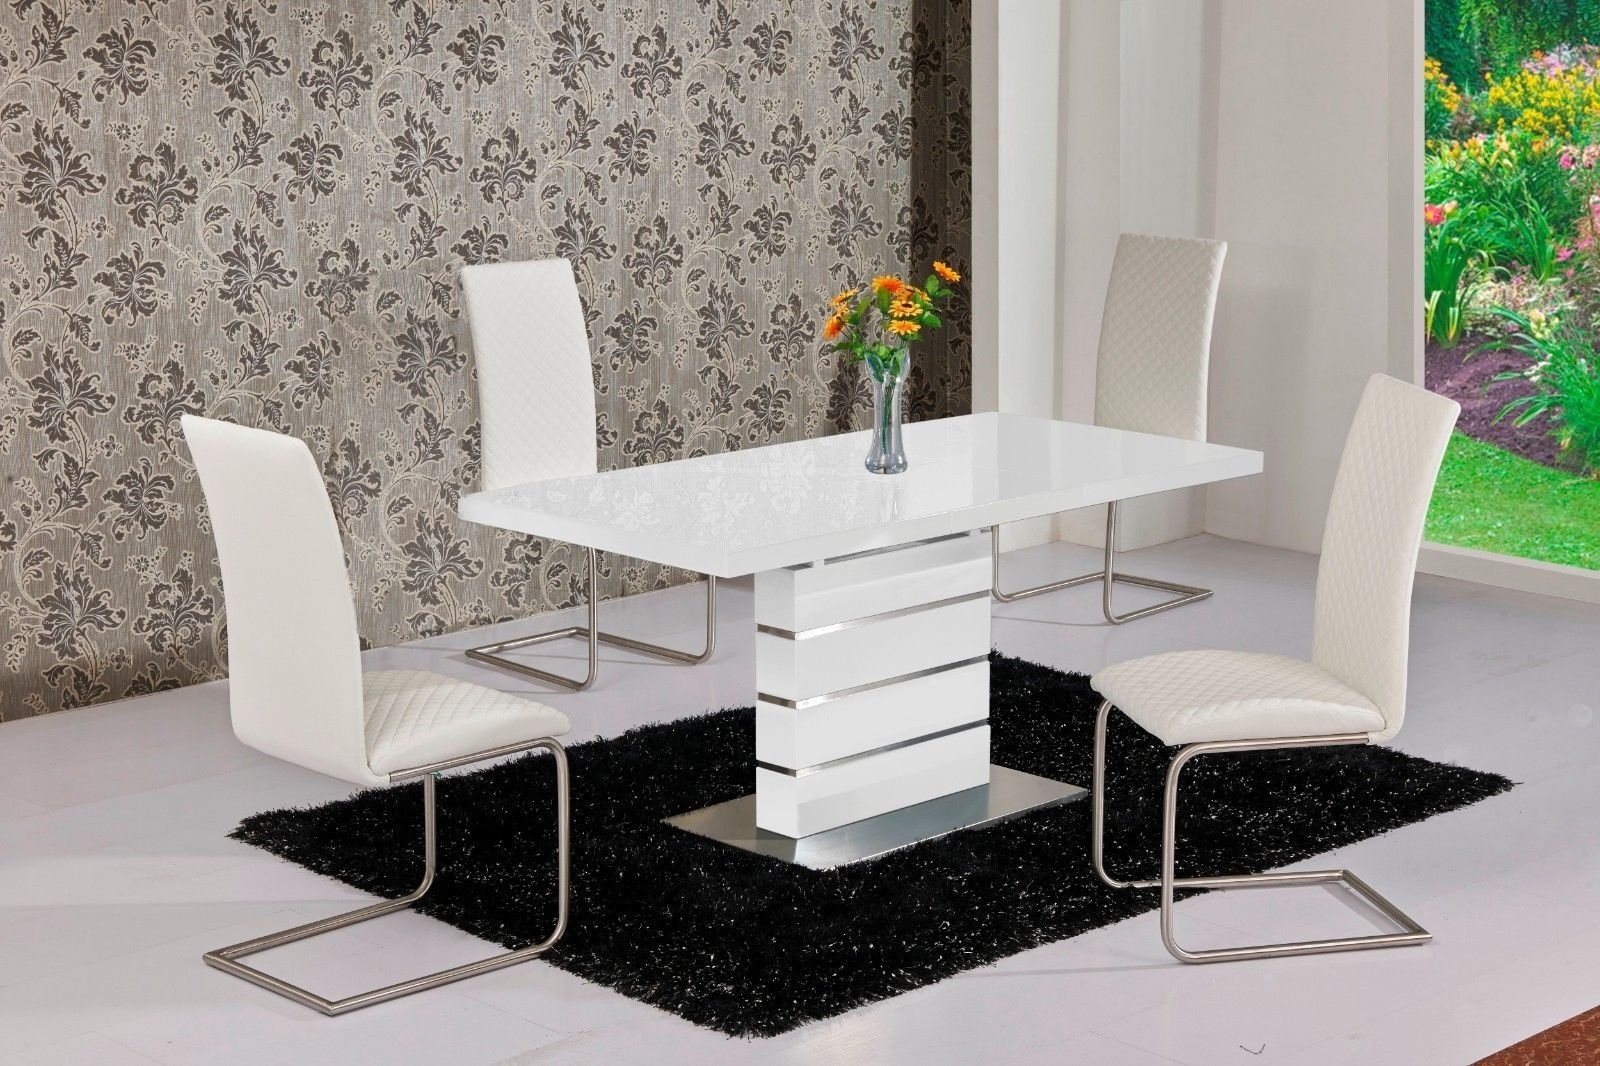 2018 White Gloss Extending Dining Tables With Regard To Mace High Gloss Extending 120 160 Dining Table & Chair Set – White (View 3 of 25)